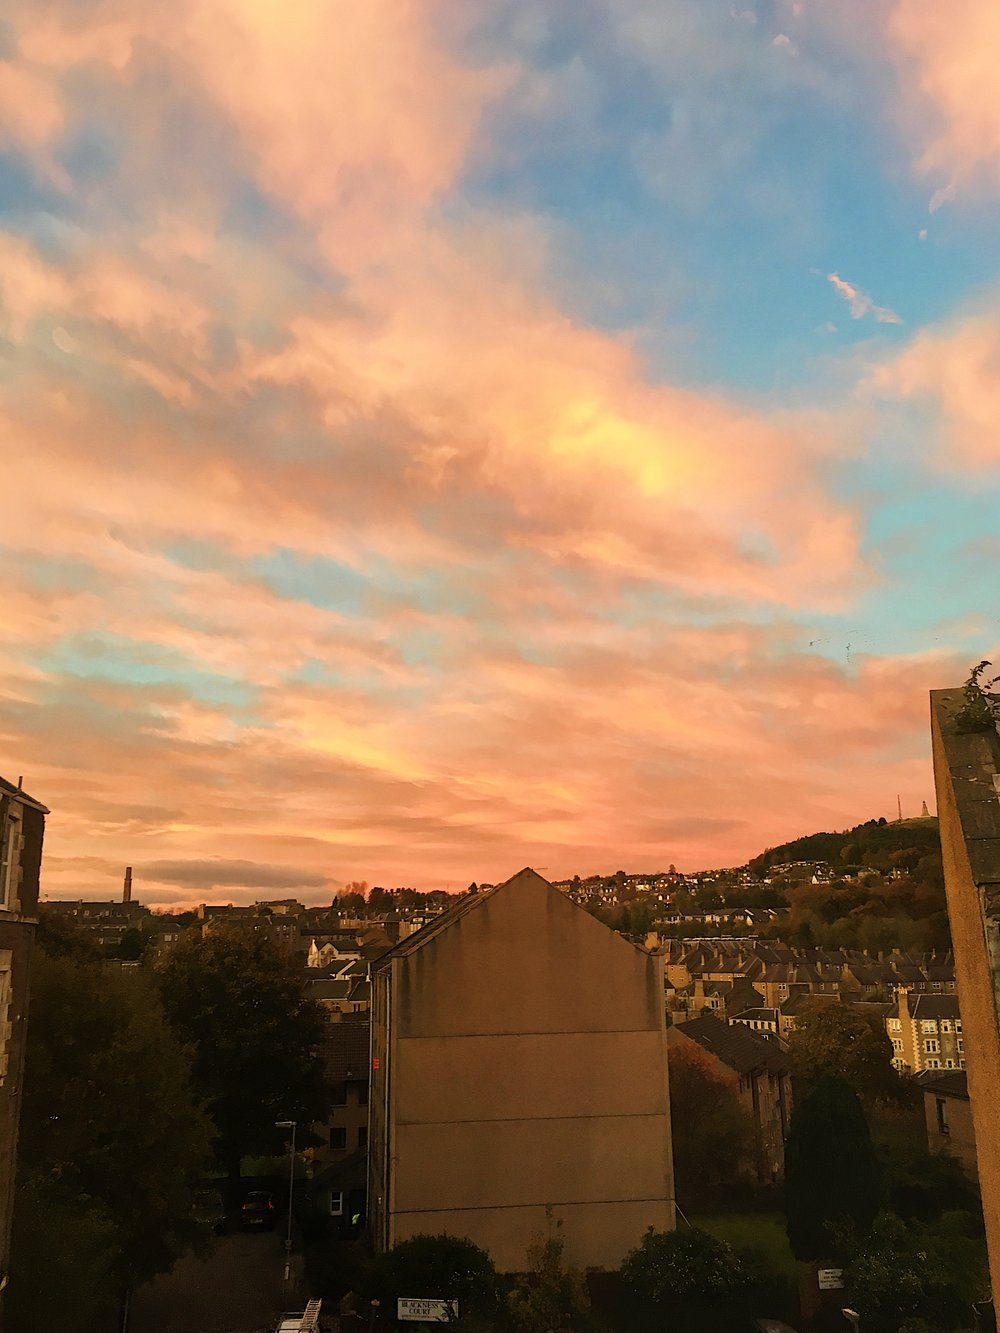 A glimpse from our window. Dundee sunsets have been magical.